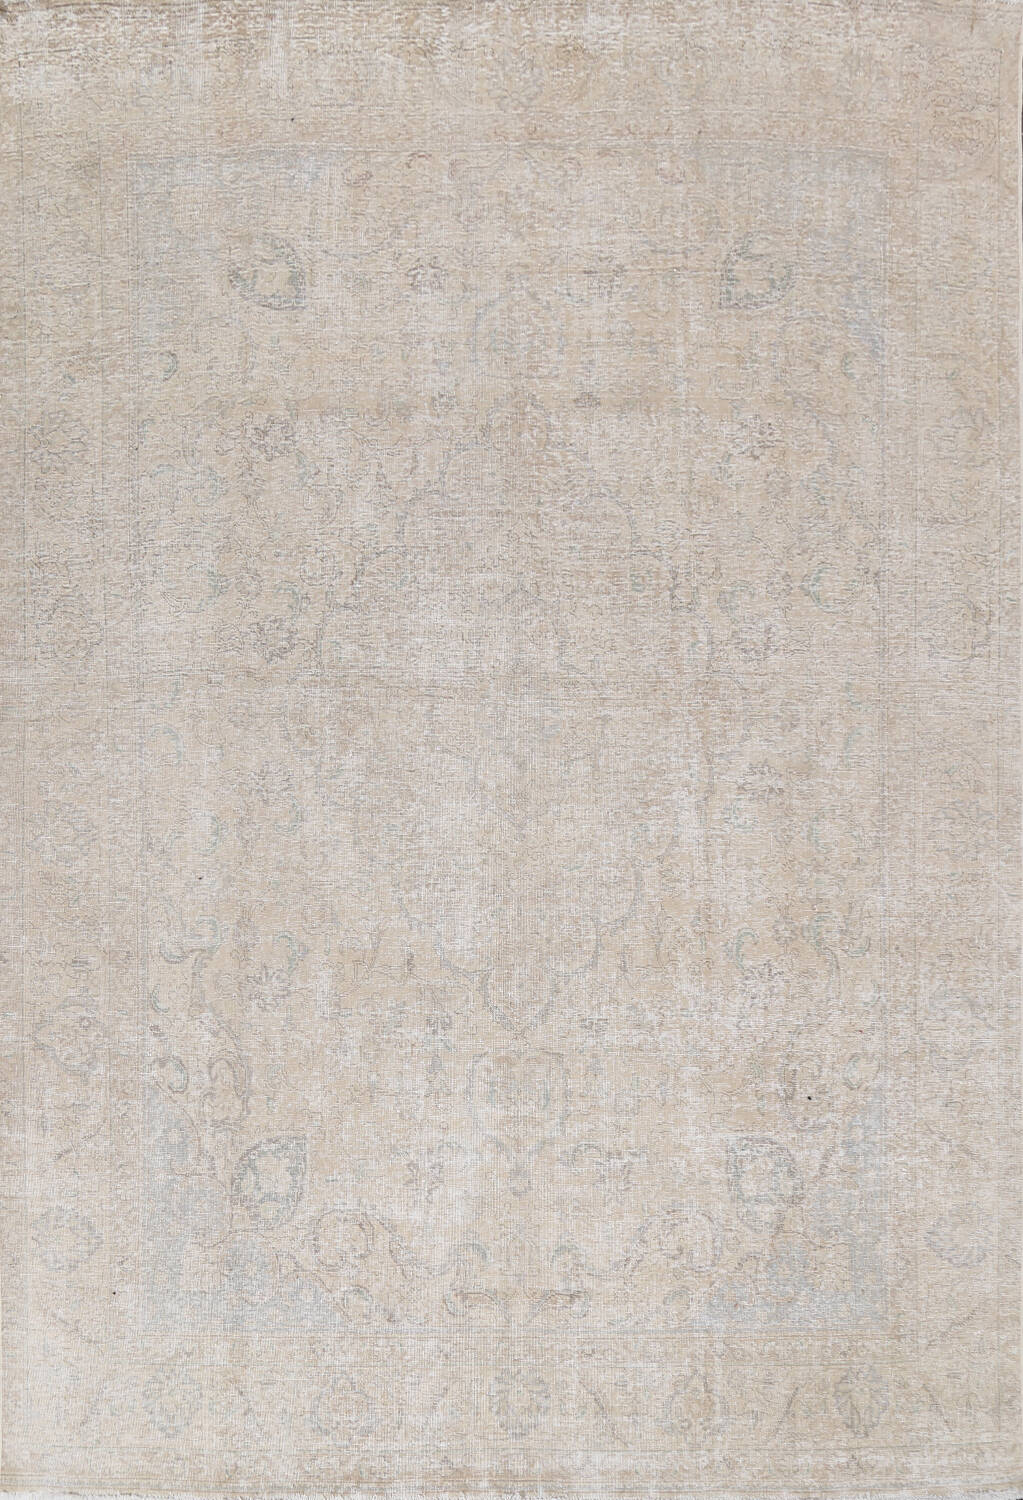 Antique Muted Distressed Tabriz Persian Area Rug 9x12 image 1